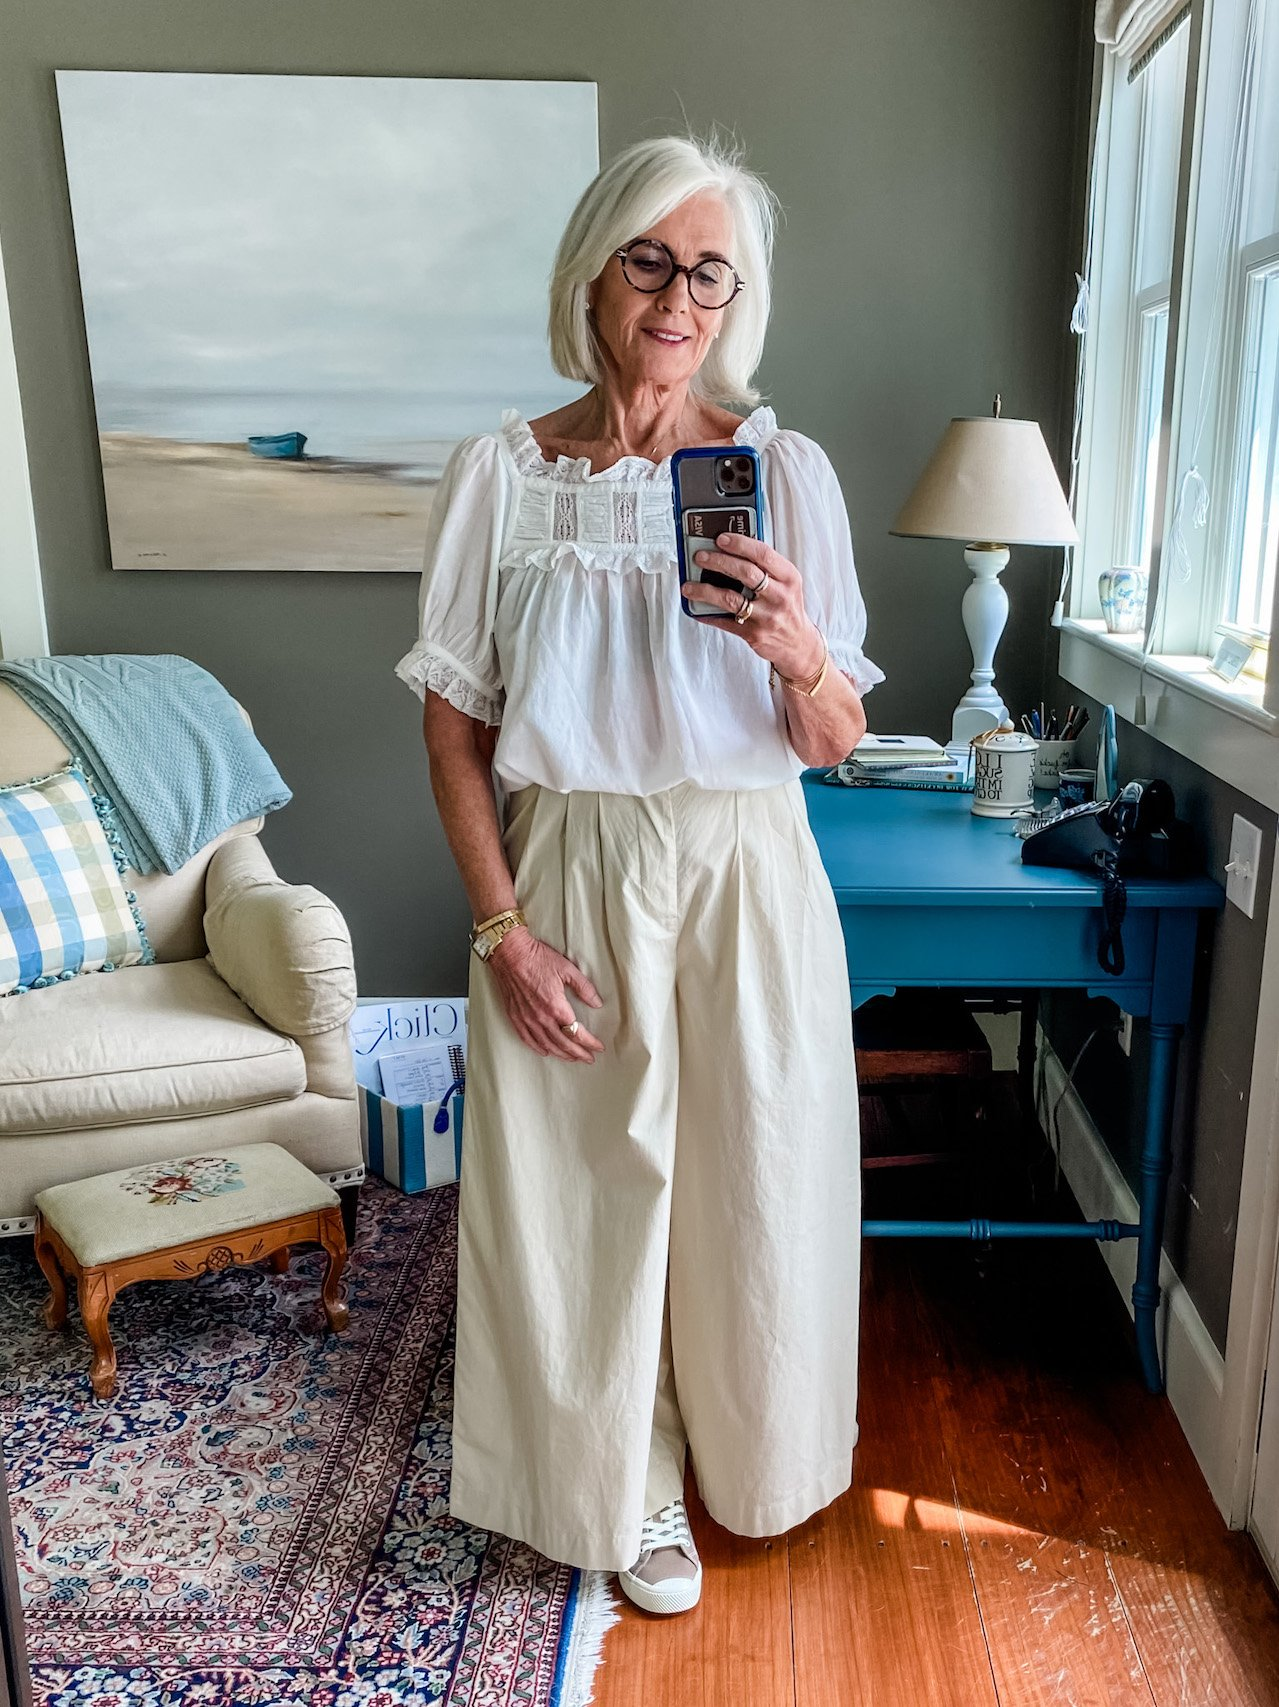 A Week of Outfits: Cheryl Sparks